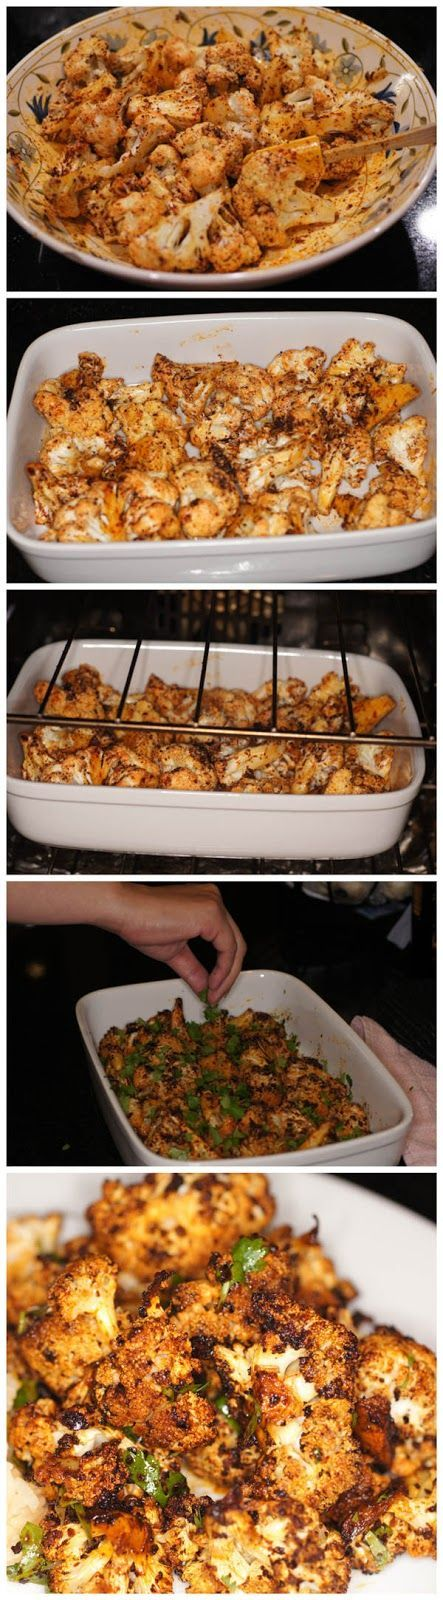 Roasted Cauliflower with Red Chile, Cilantro & Lime! So delicious & simple to make! Awesome 'finger food ' or side dish!! #vegan #easy #cauliflower (comment by @paigeydoll1 )